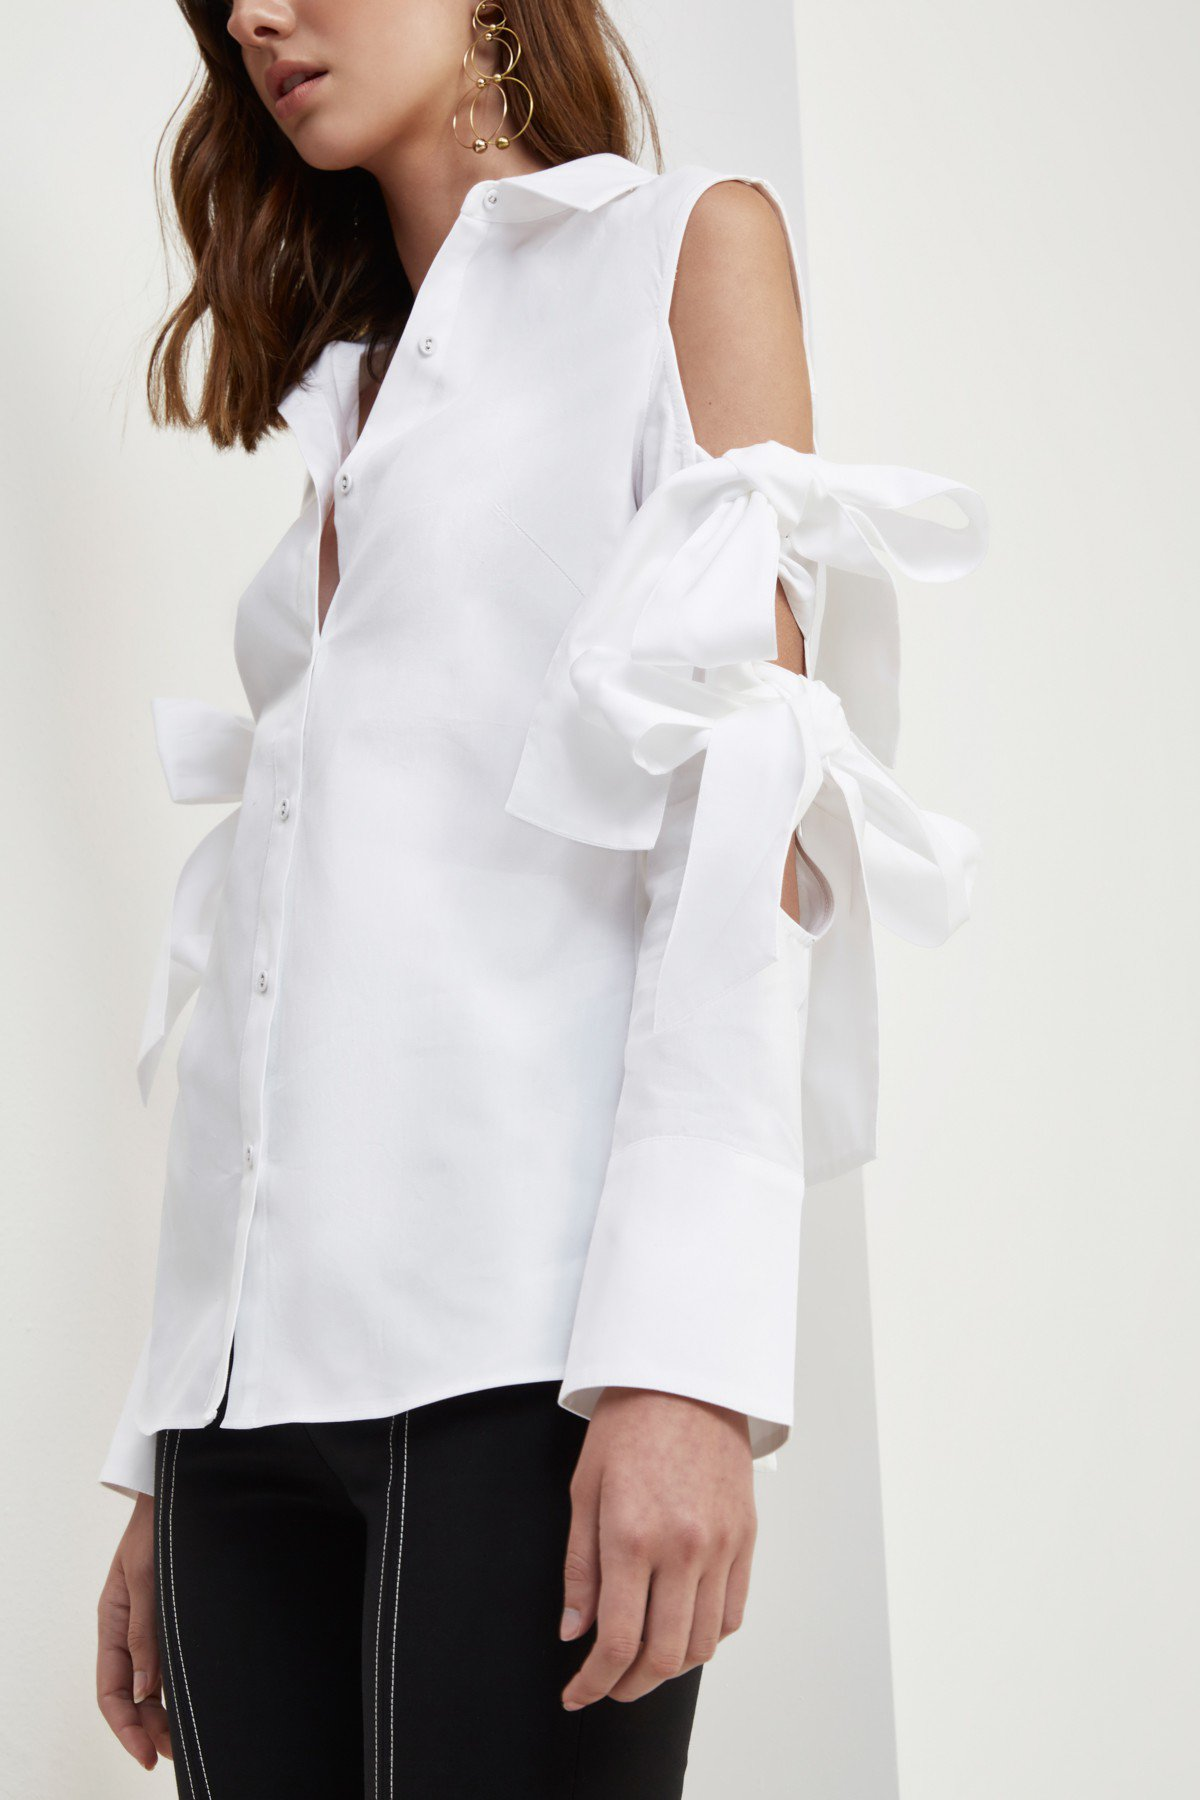 C/MEO COLLECTIVE Surrender Shirt